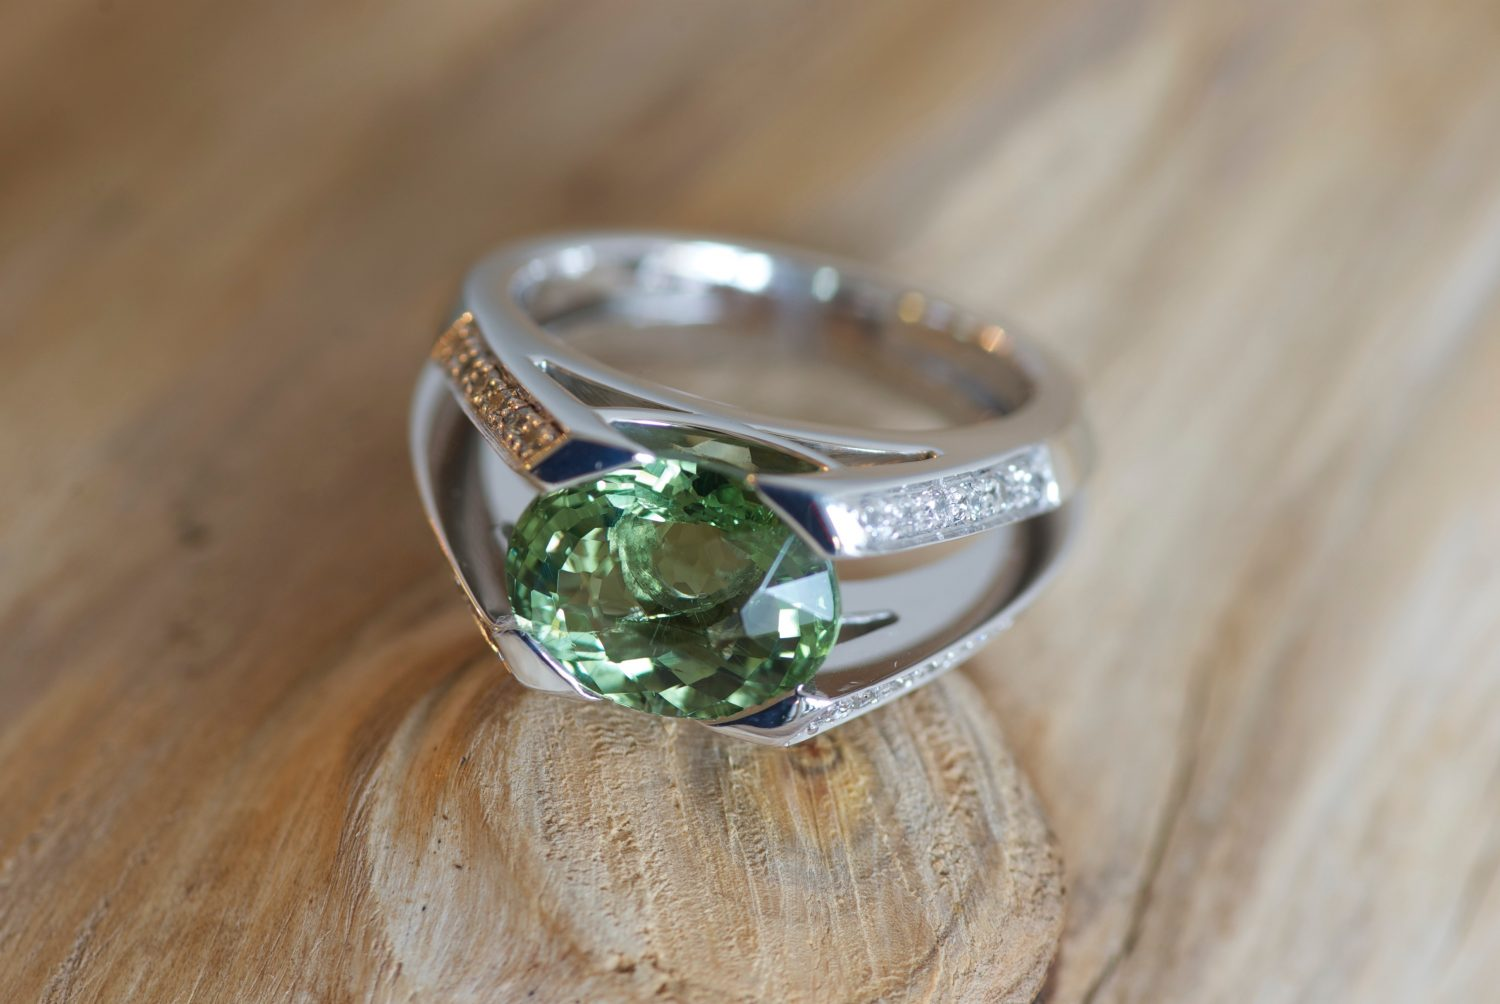 Bague Massada. Or gris, Tourmaline verte et diamants.